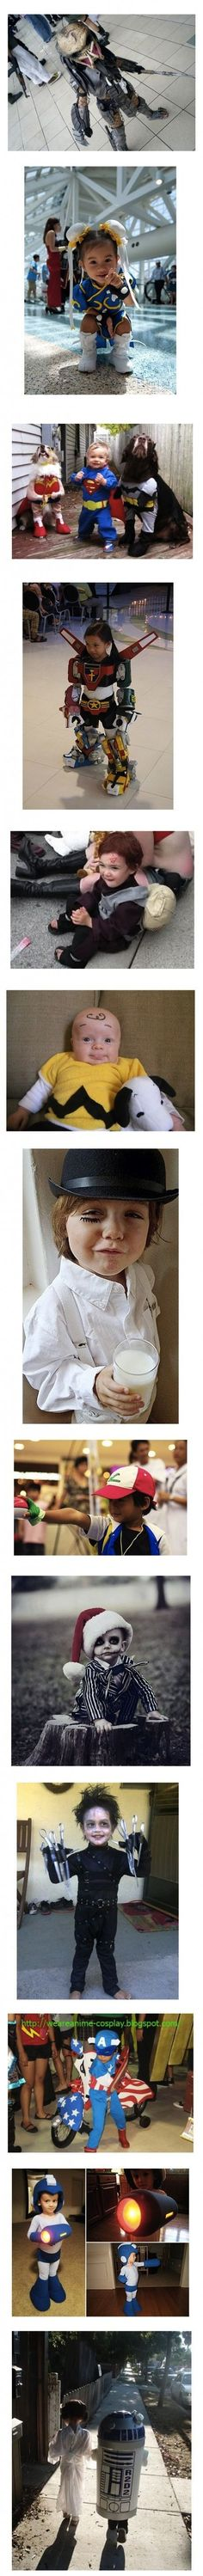 THE most awesome kids costumes ever